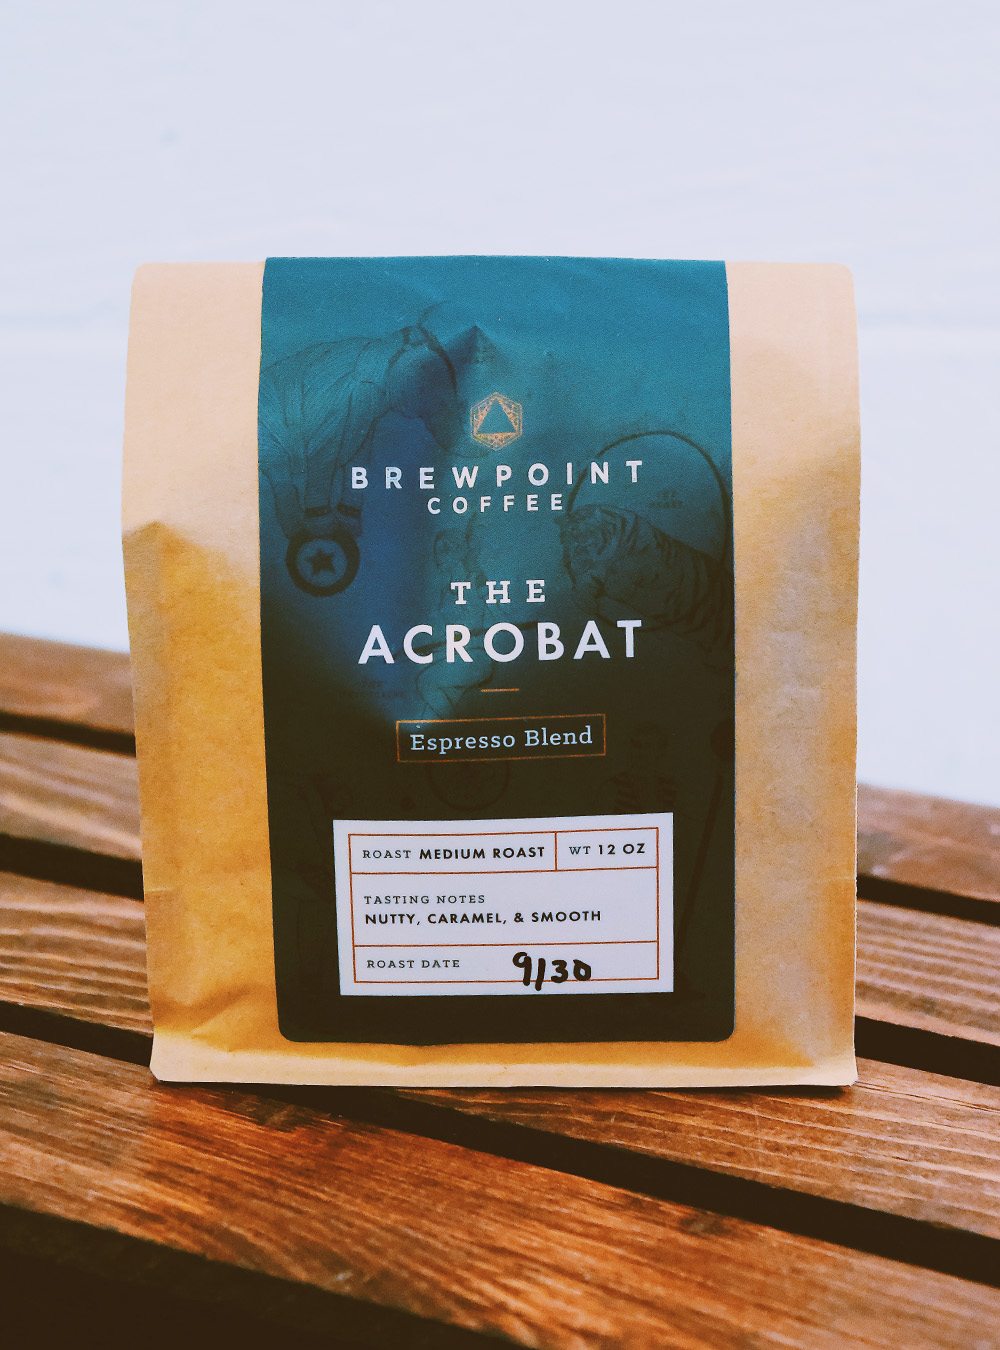 Packaging design for Brewpoint Coffee's espresso blend –The Acrobat.